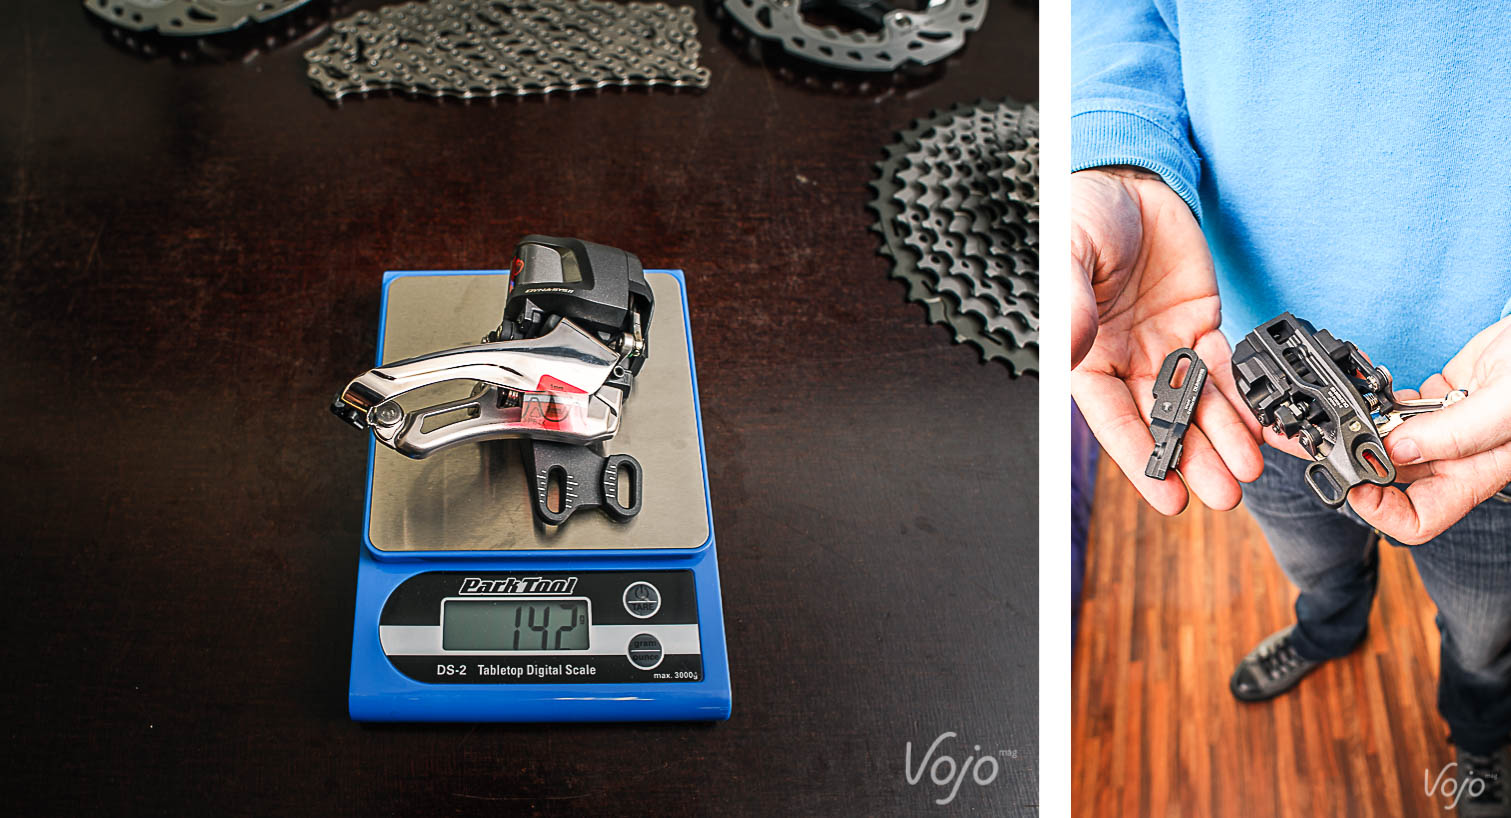 Shimano_XTR_Di2_Compo1_Poids_Vérifies_Verfied_Weight_Copyright_OBeart_VojoMag